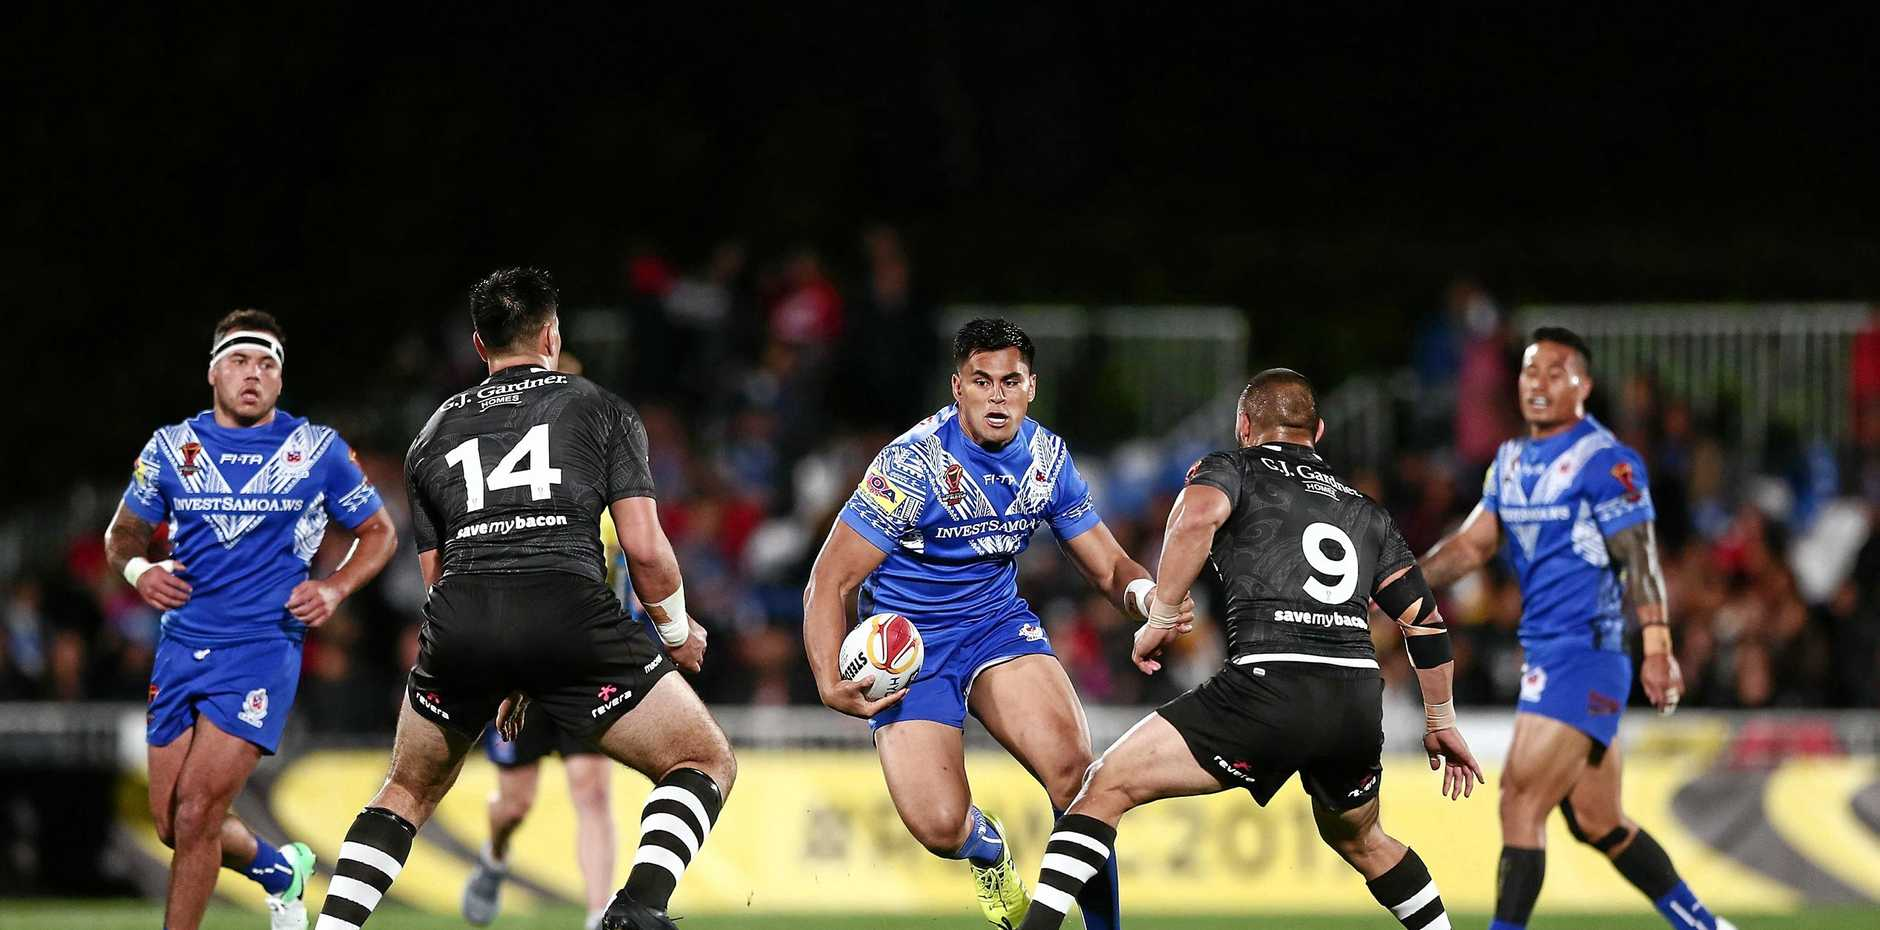 Herman Ese'ese of Samoa makes a run in last weekend's Rugby League World Cup match against New Zealand.